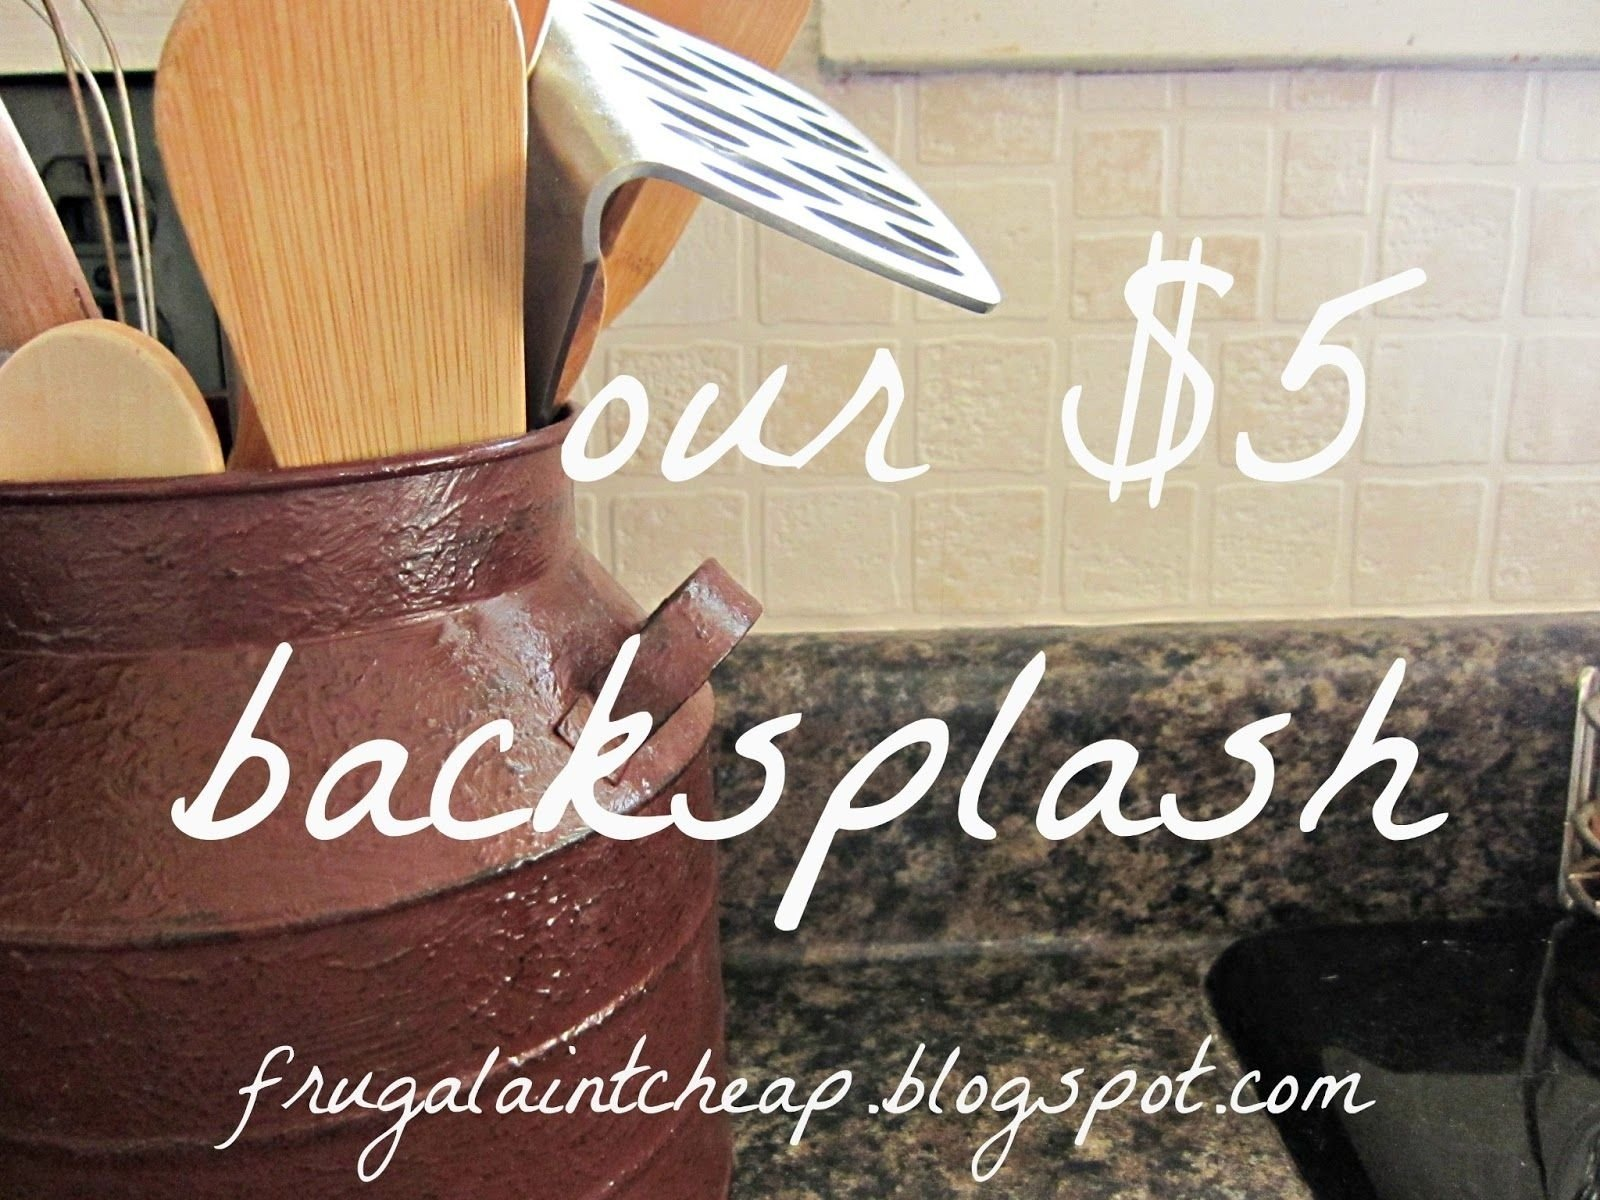 10 Stunning Backsplash Ideas For Kitchens Inexpensive frugal aint cheap kitchen backsplash great for renters too low 1 2021